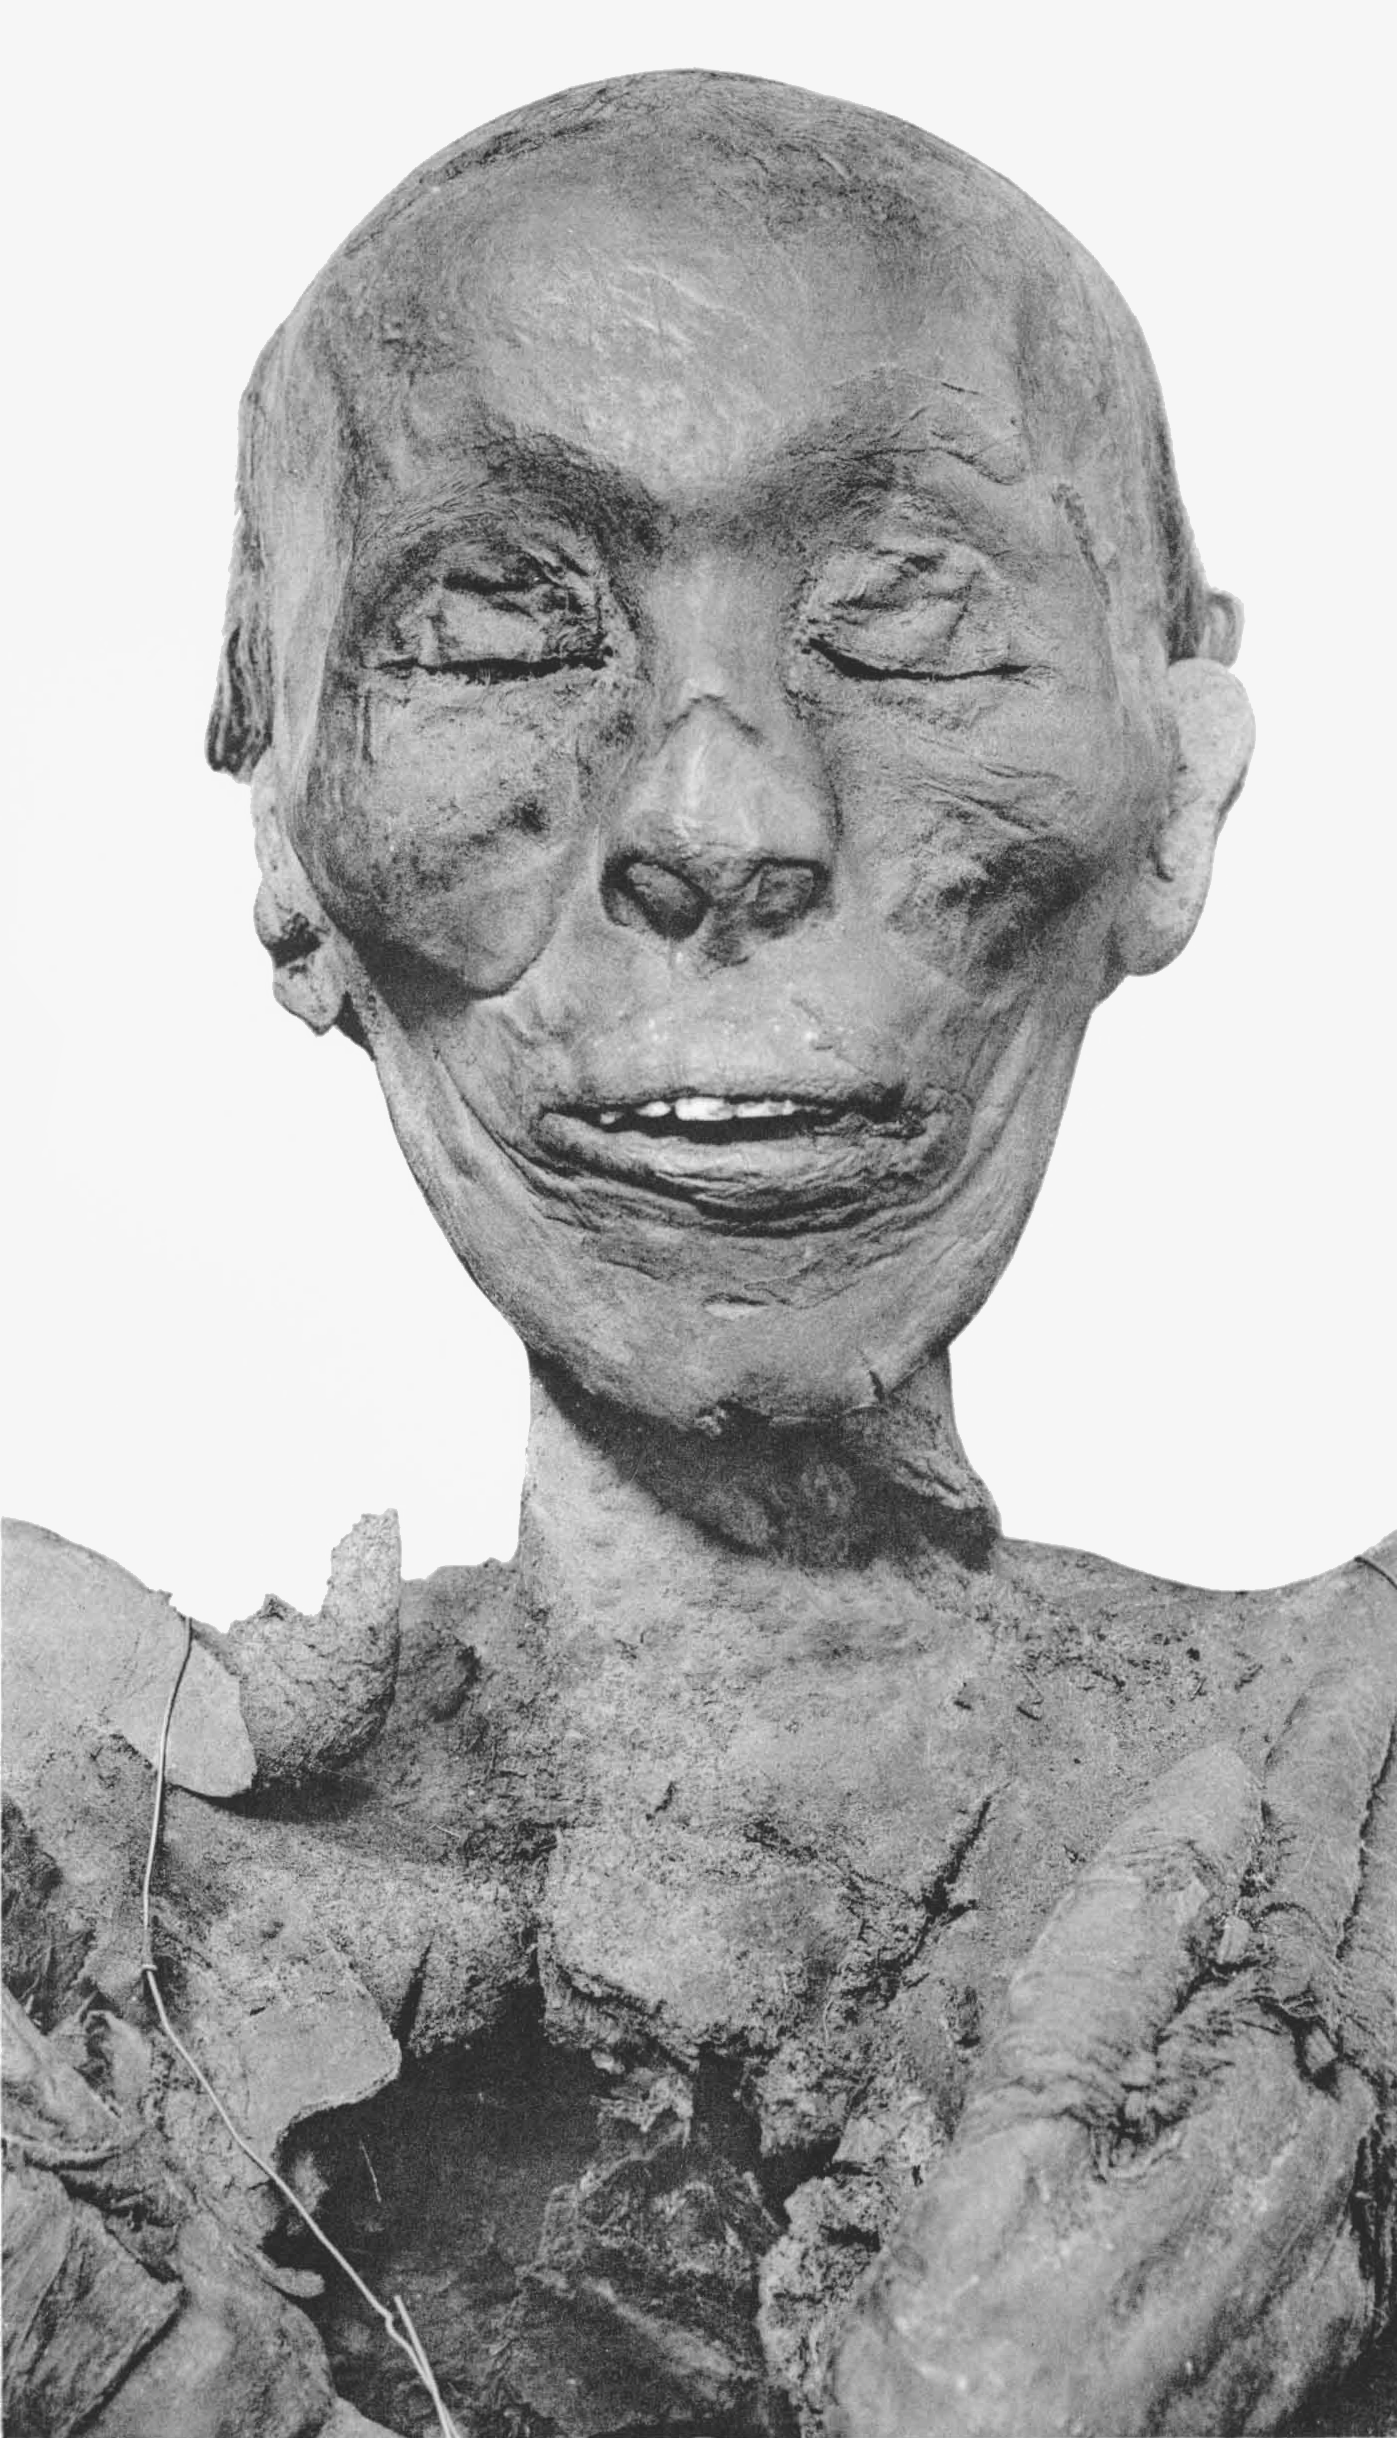 Thutmose II, Hatshepsut's half-brother and husband, suffered from lesions, pustules and an enlarged heart